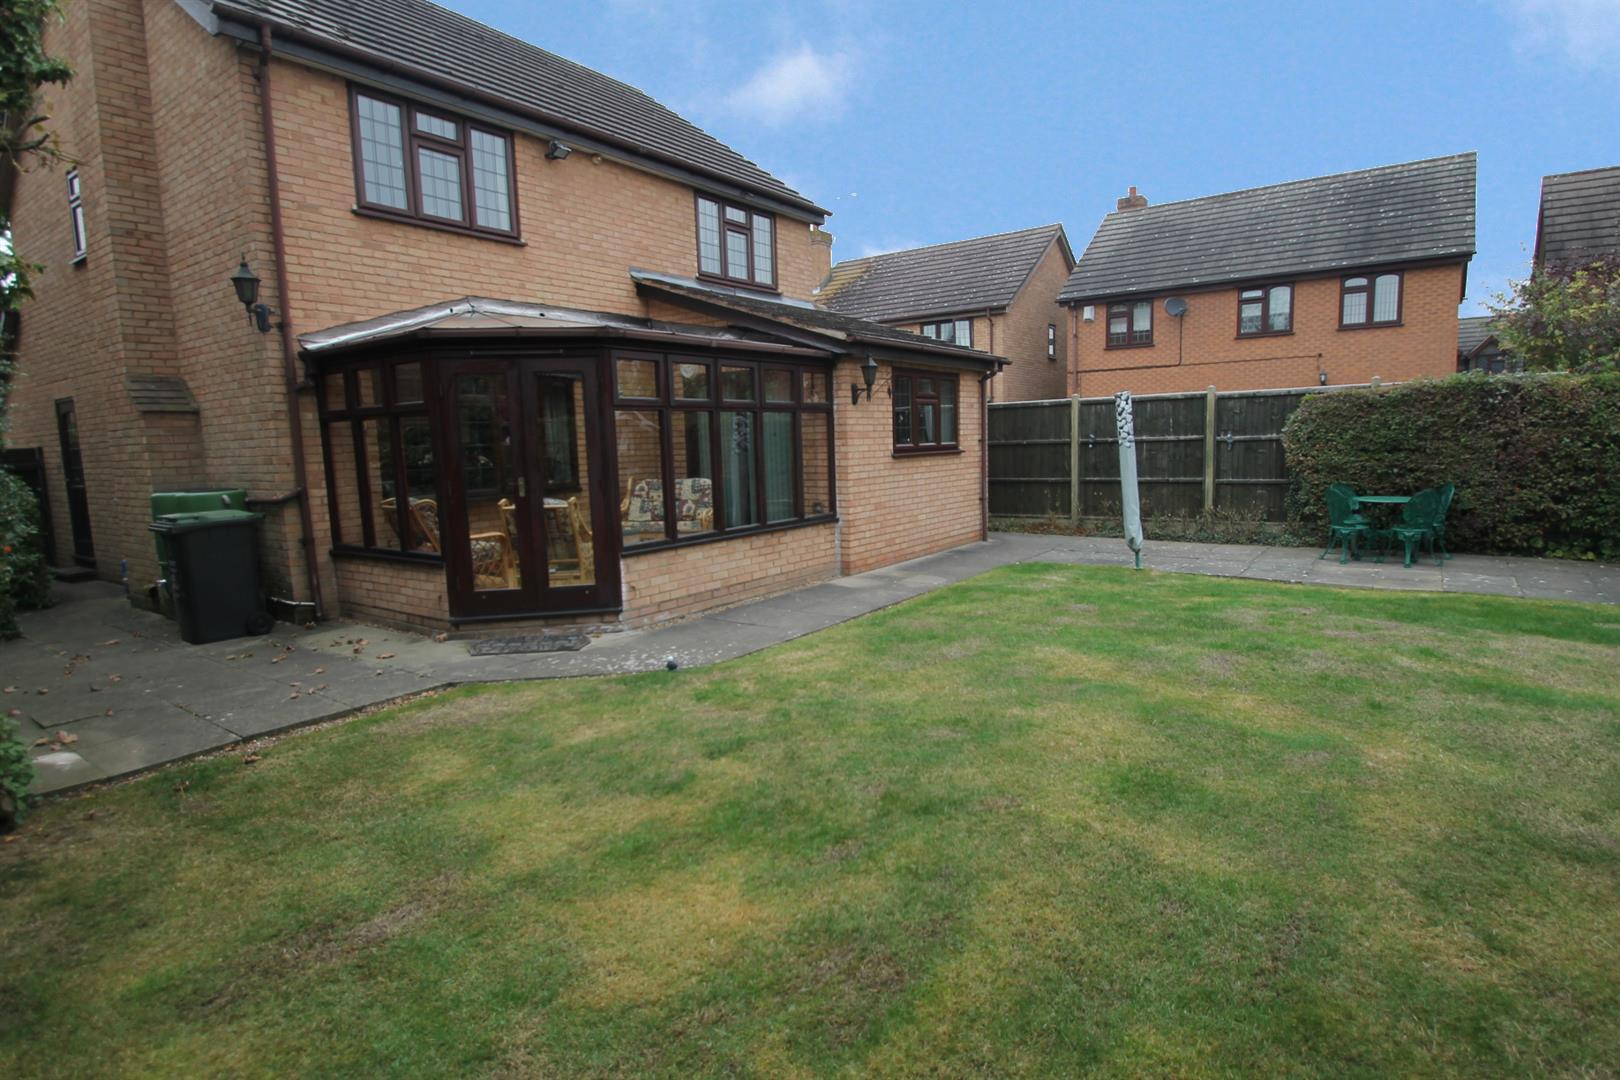 4 Bedroom Detached House For Sale In Aylesford